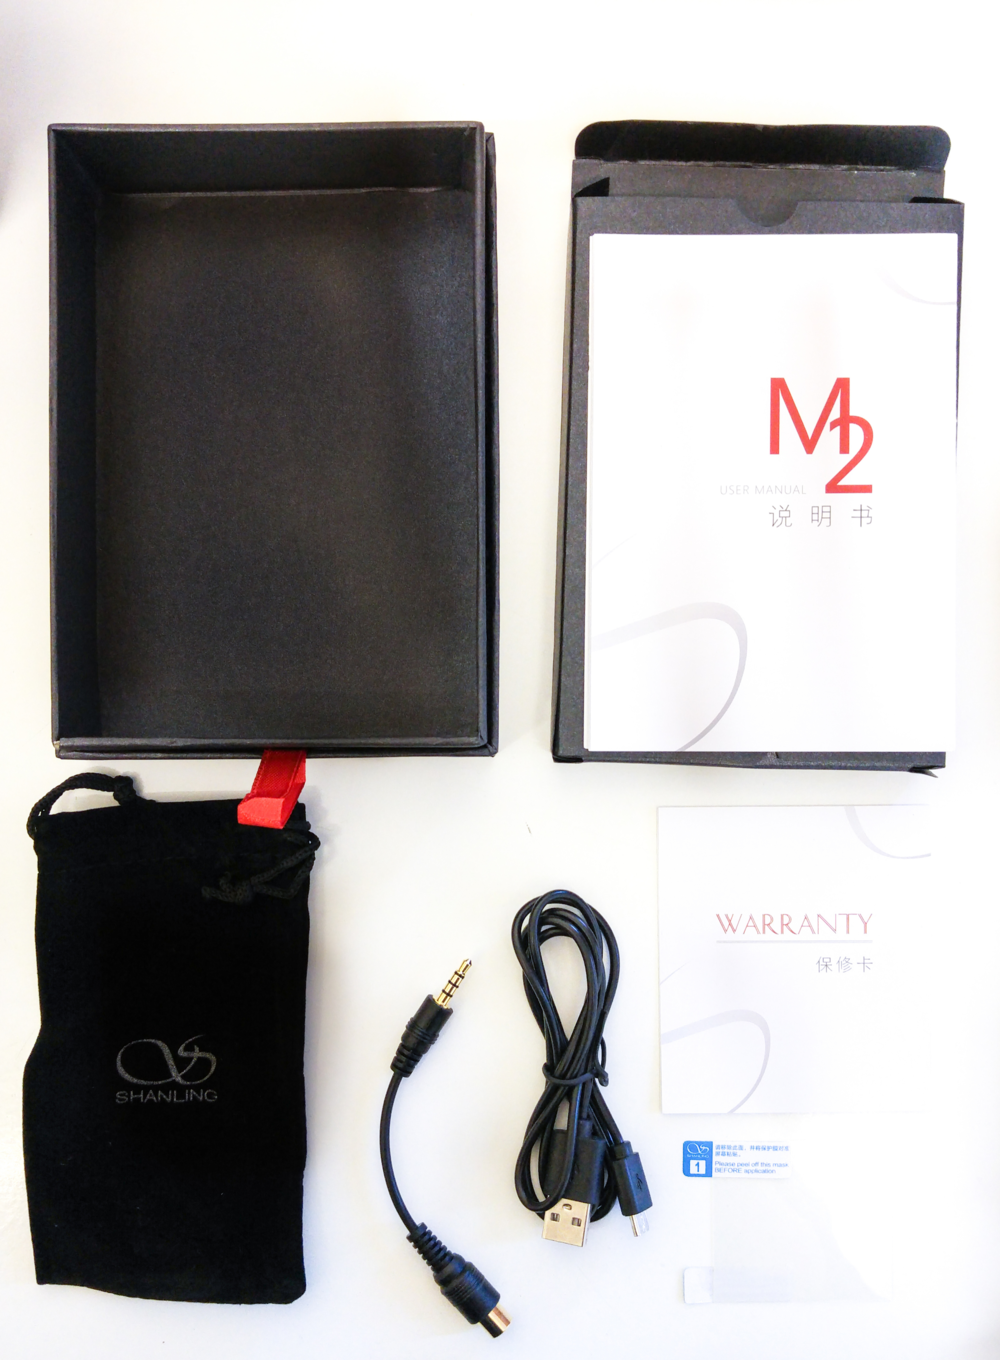 The Shanling Audio M2 accessories kit.